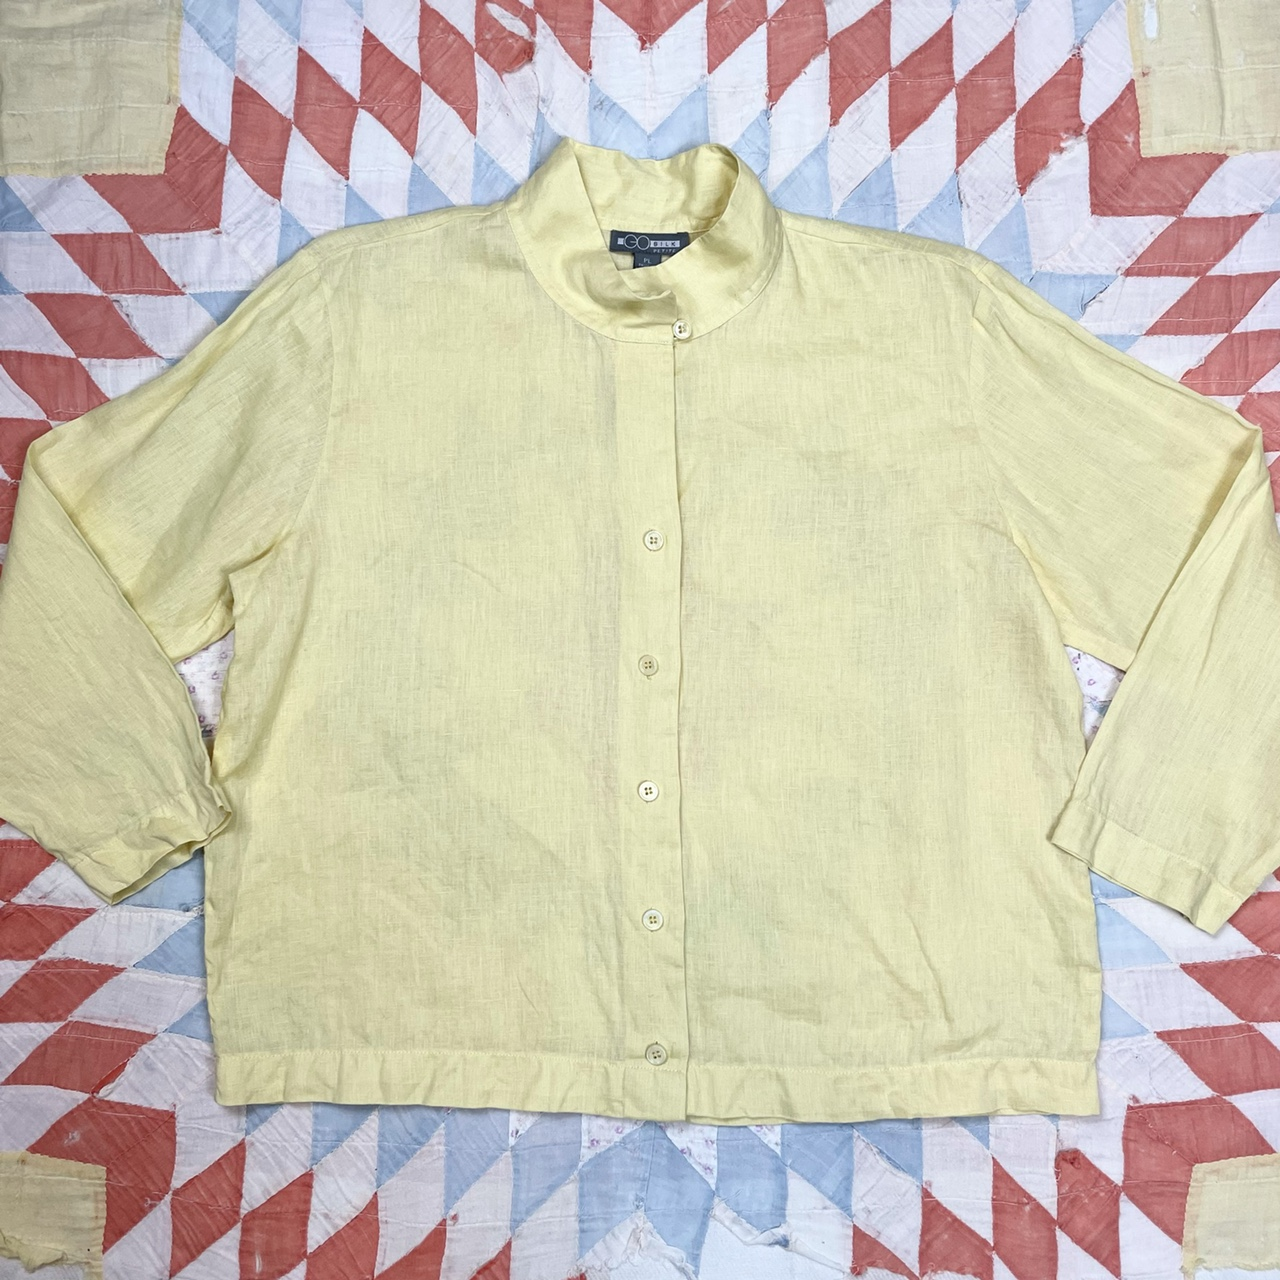 Product Image 1 - Vintage 90s/2000s lagenlook style linen